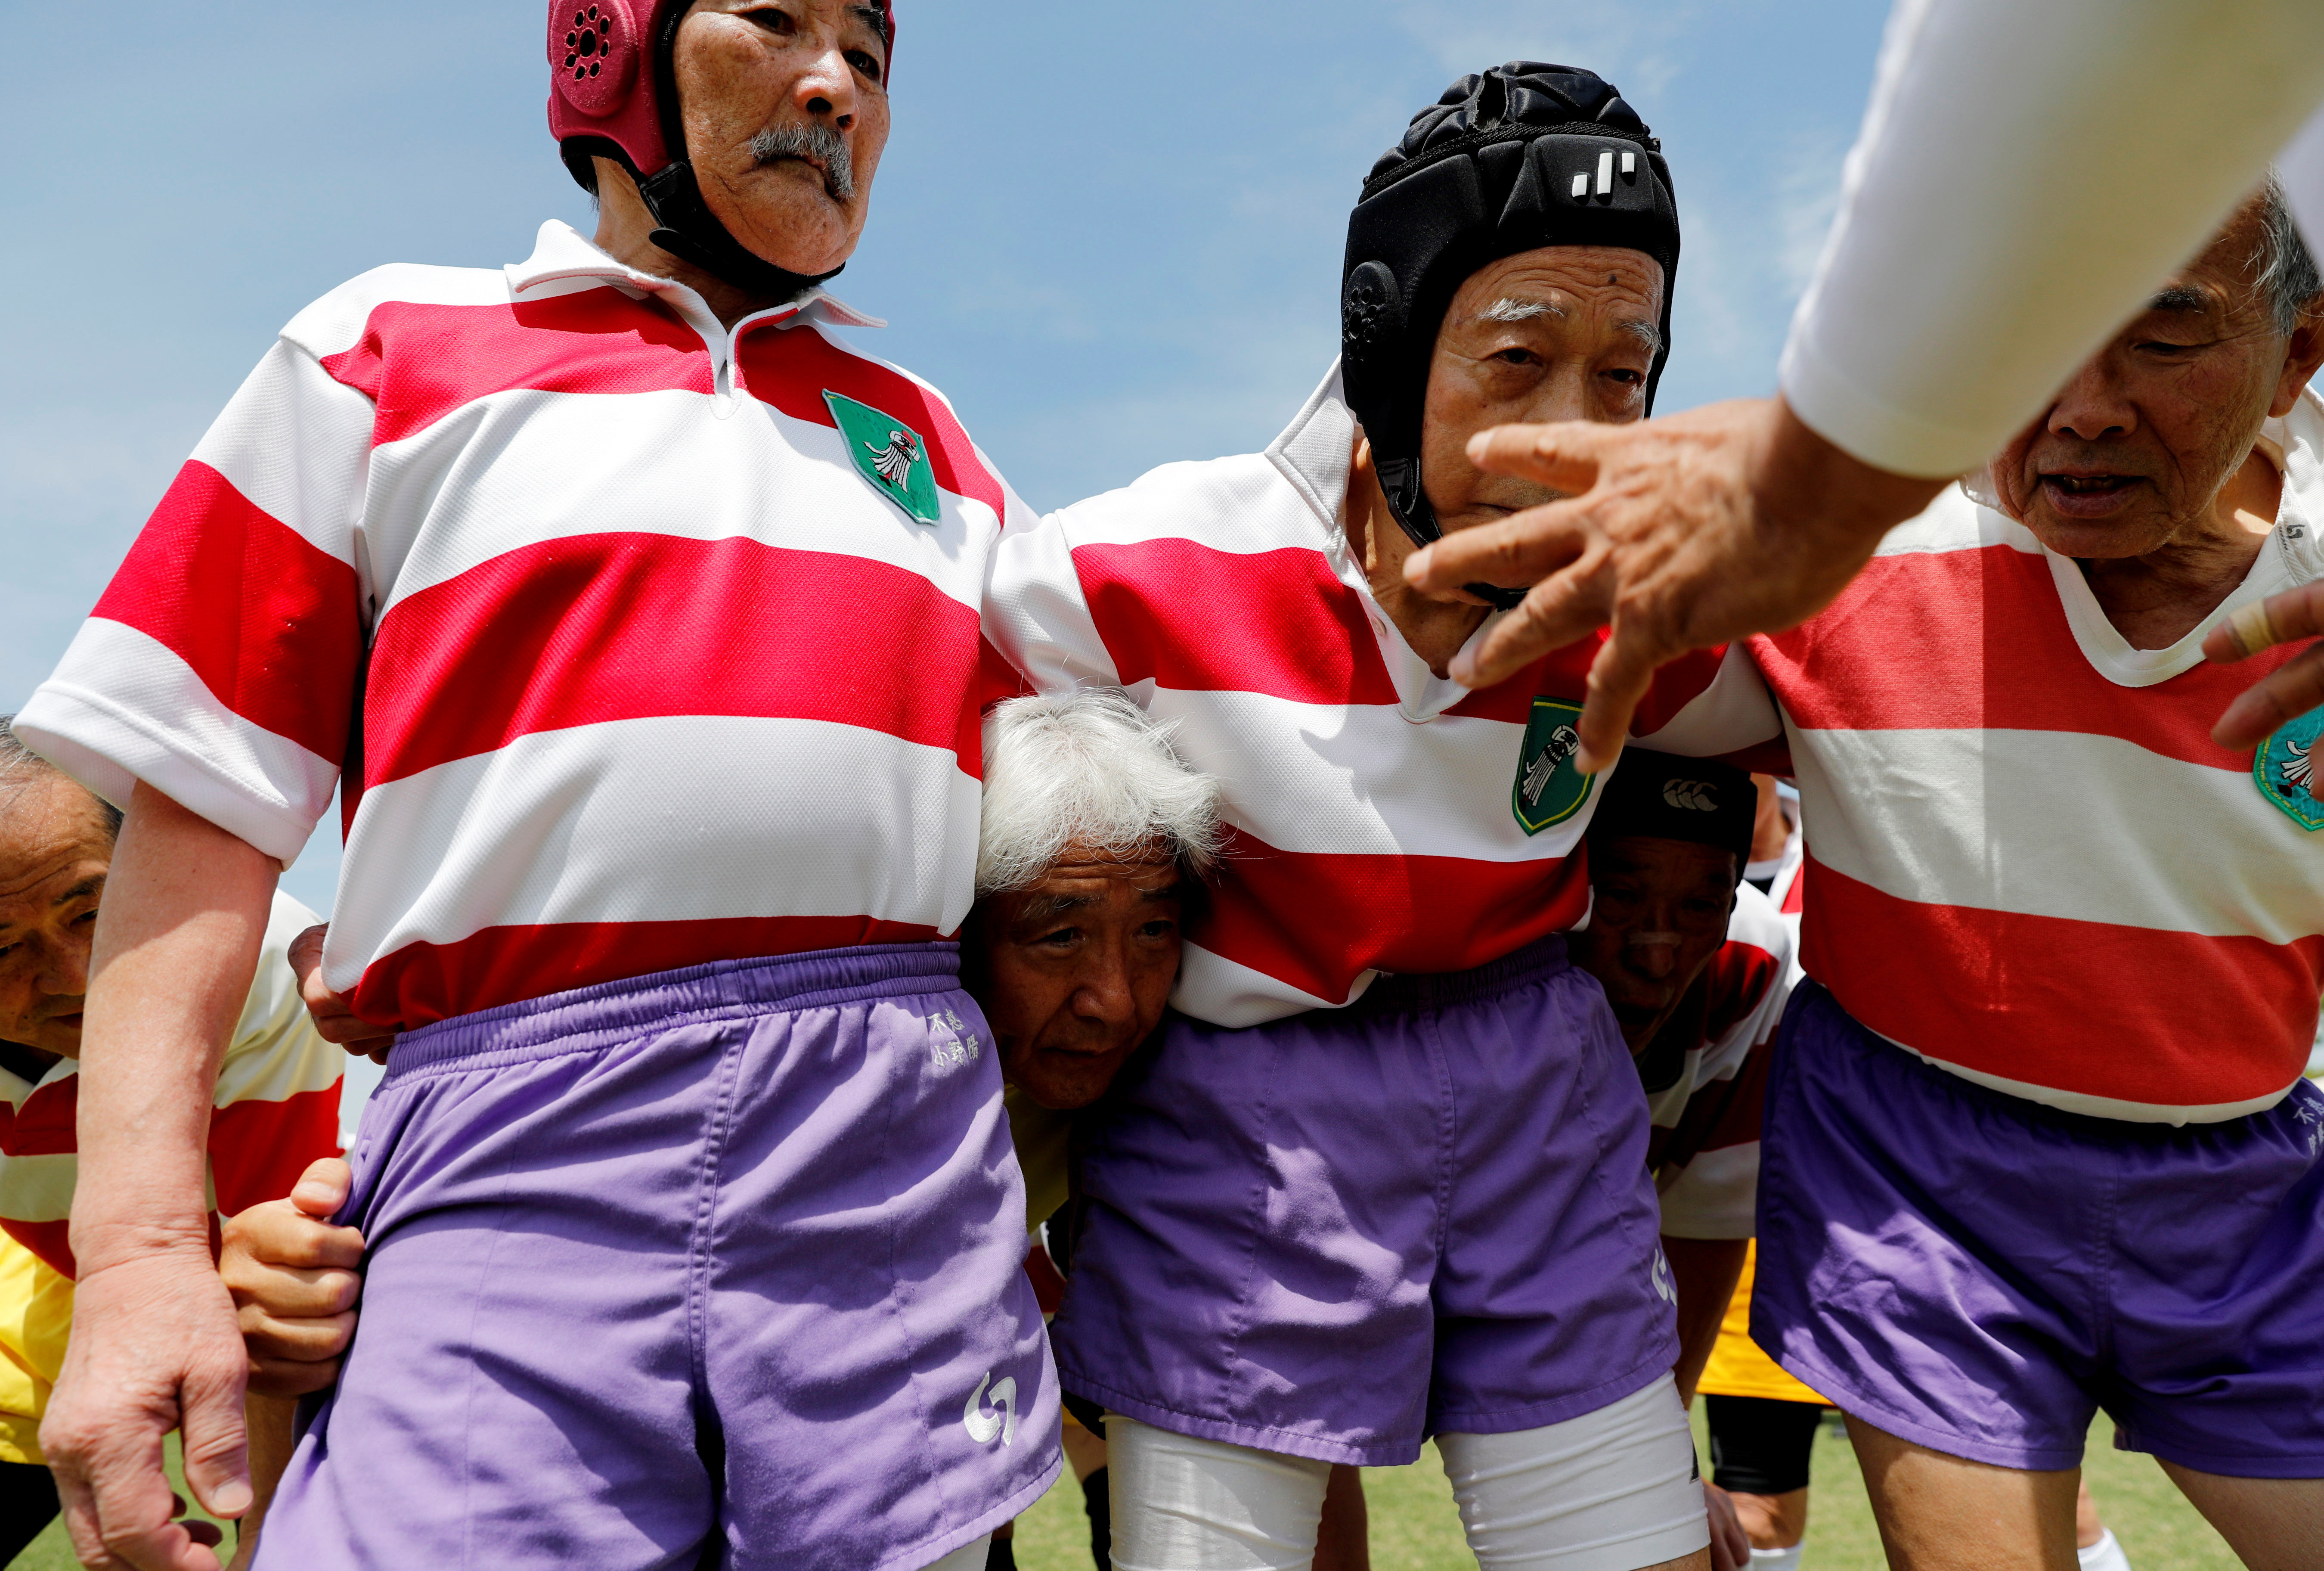 Ryuichi Nagayama, 86, Fuwaku Rugby Club's oldest active player, practices before a match in Kumagaya, Saitama Prefecture, Japan, May 3, 2019.